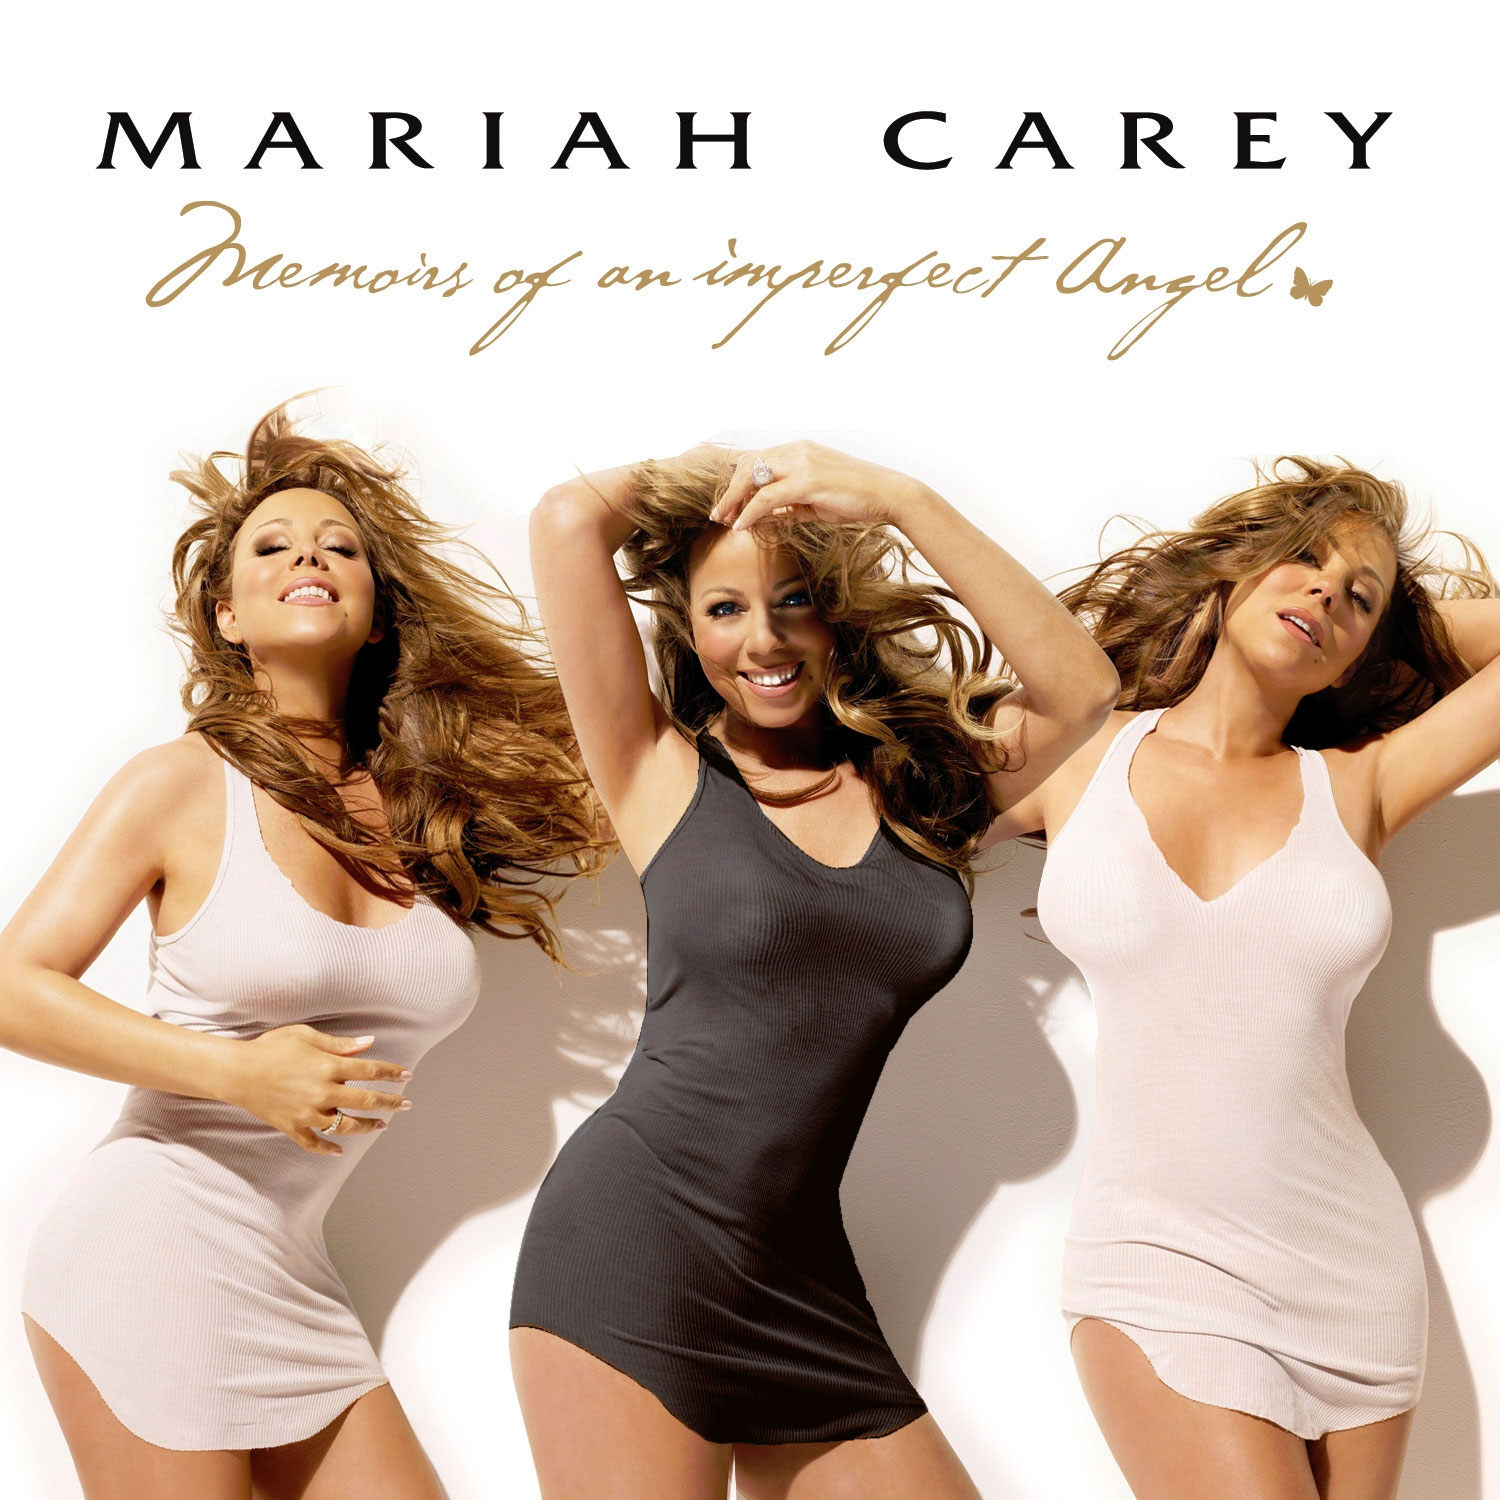 Mariah Carey Images | Icons, Wallpapers and Photos on Fanpop |Mariah Carey Memoirs Of An Imperfect Angel Photoshoot